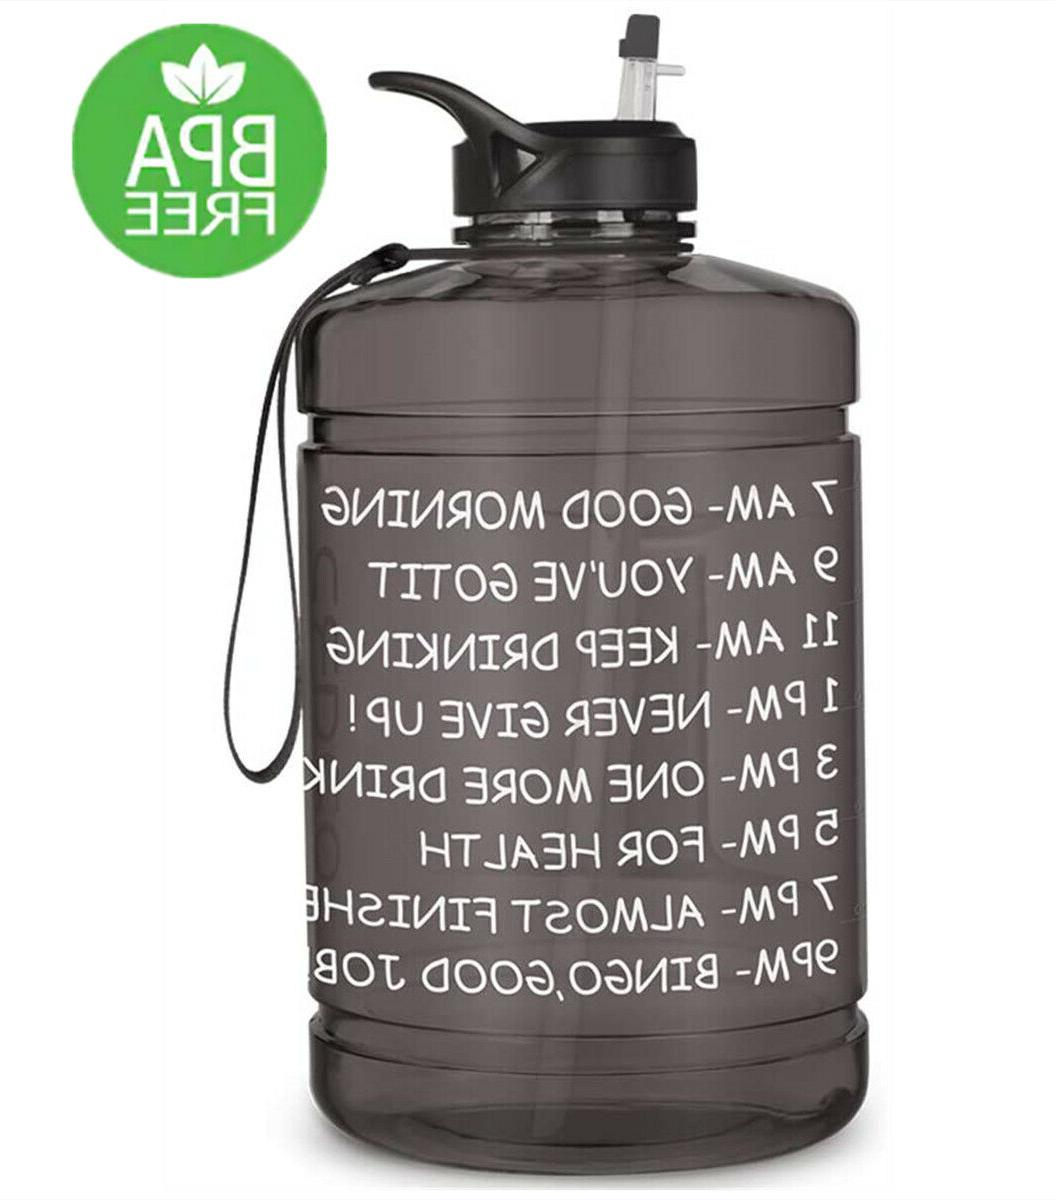 1 gallon water bottle with time marker